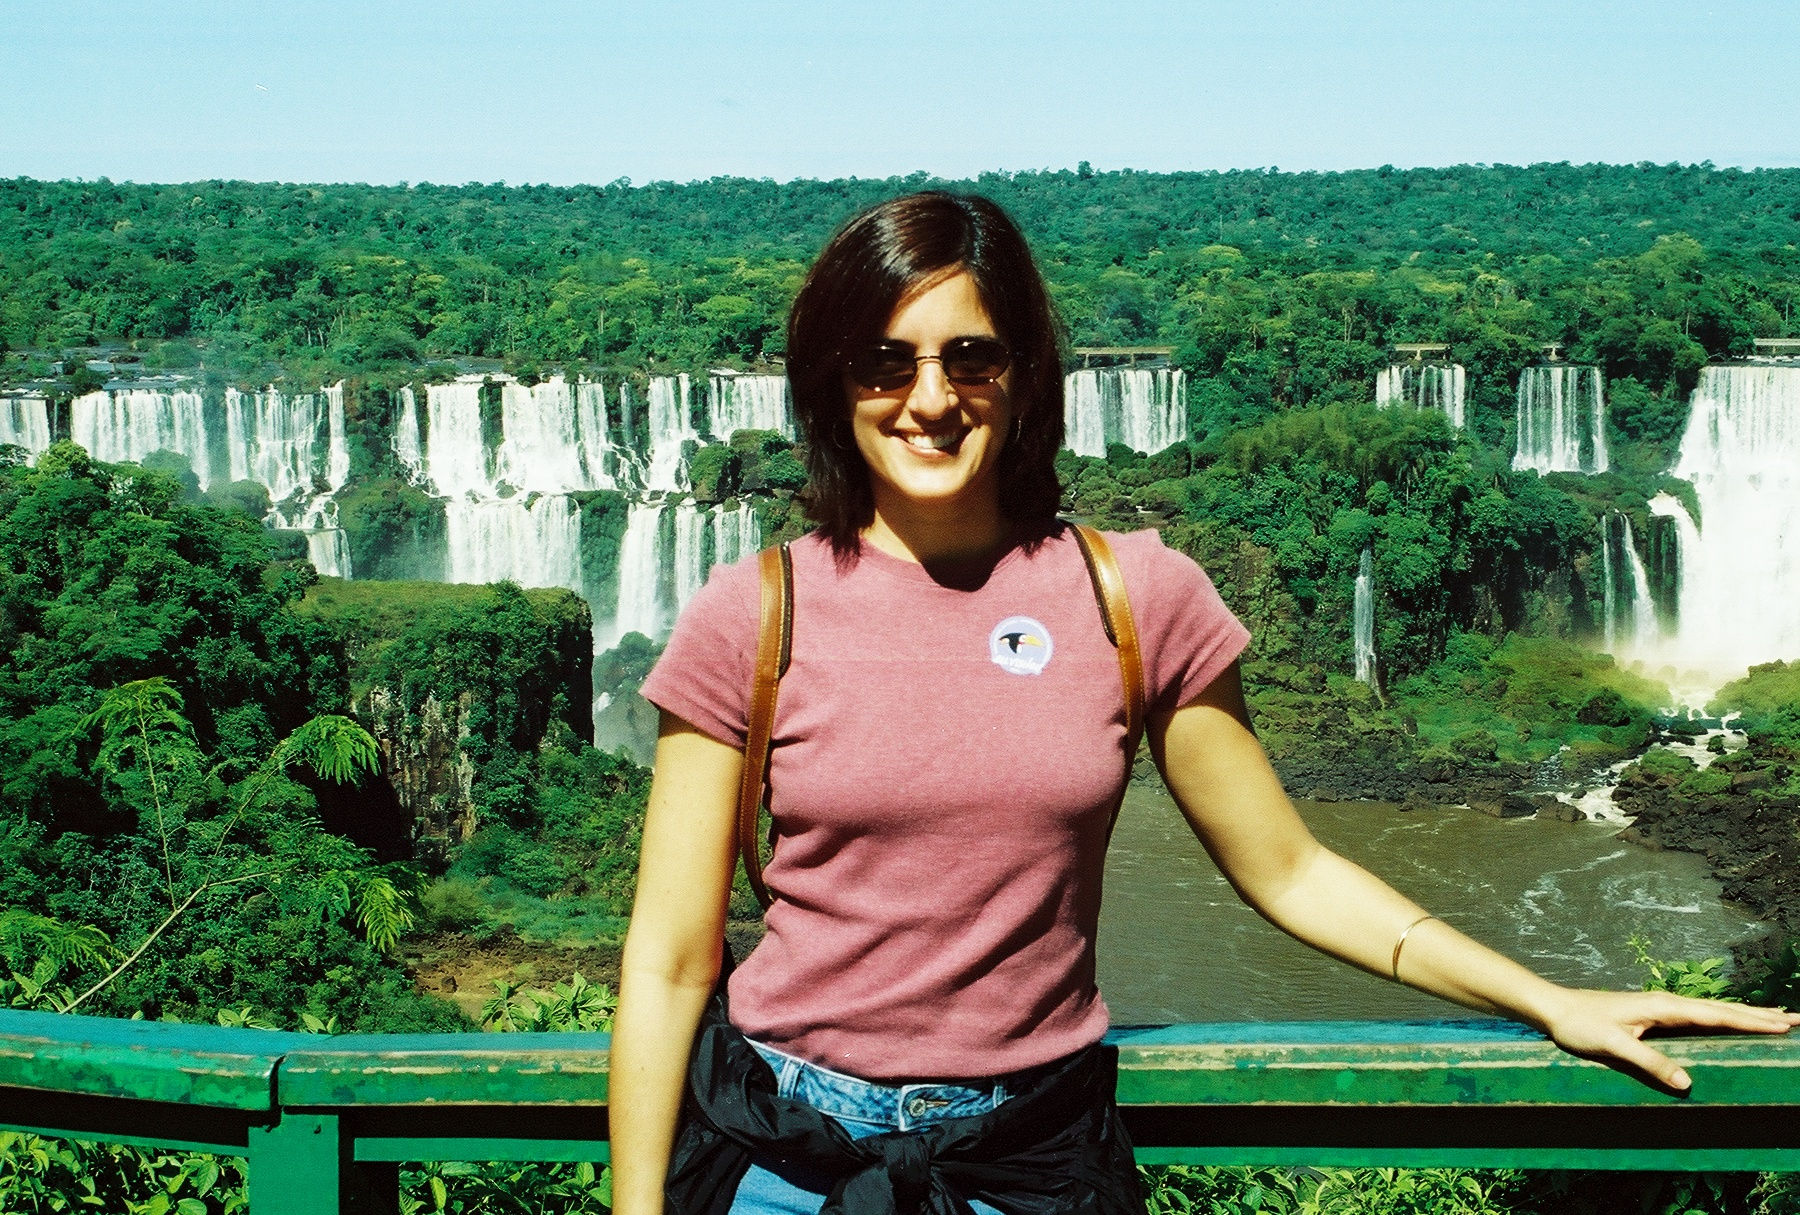 The scenery from the Brazilian side of the Iguazú Falls.